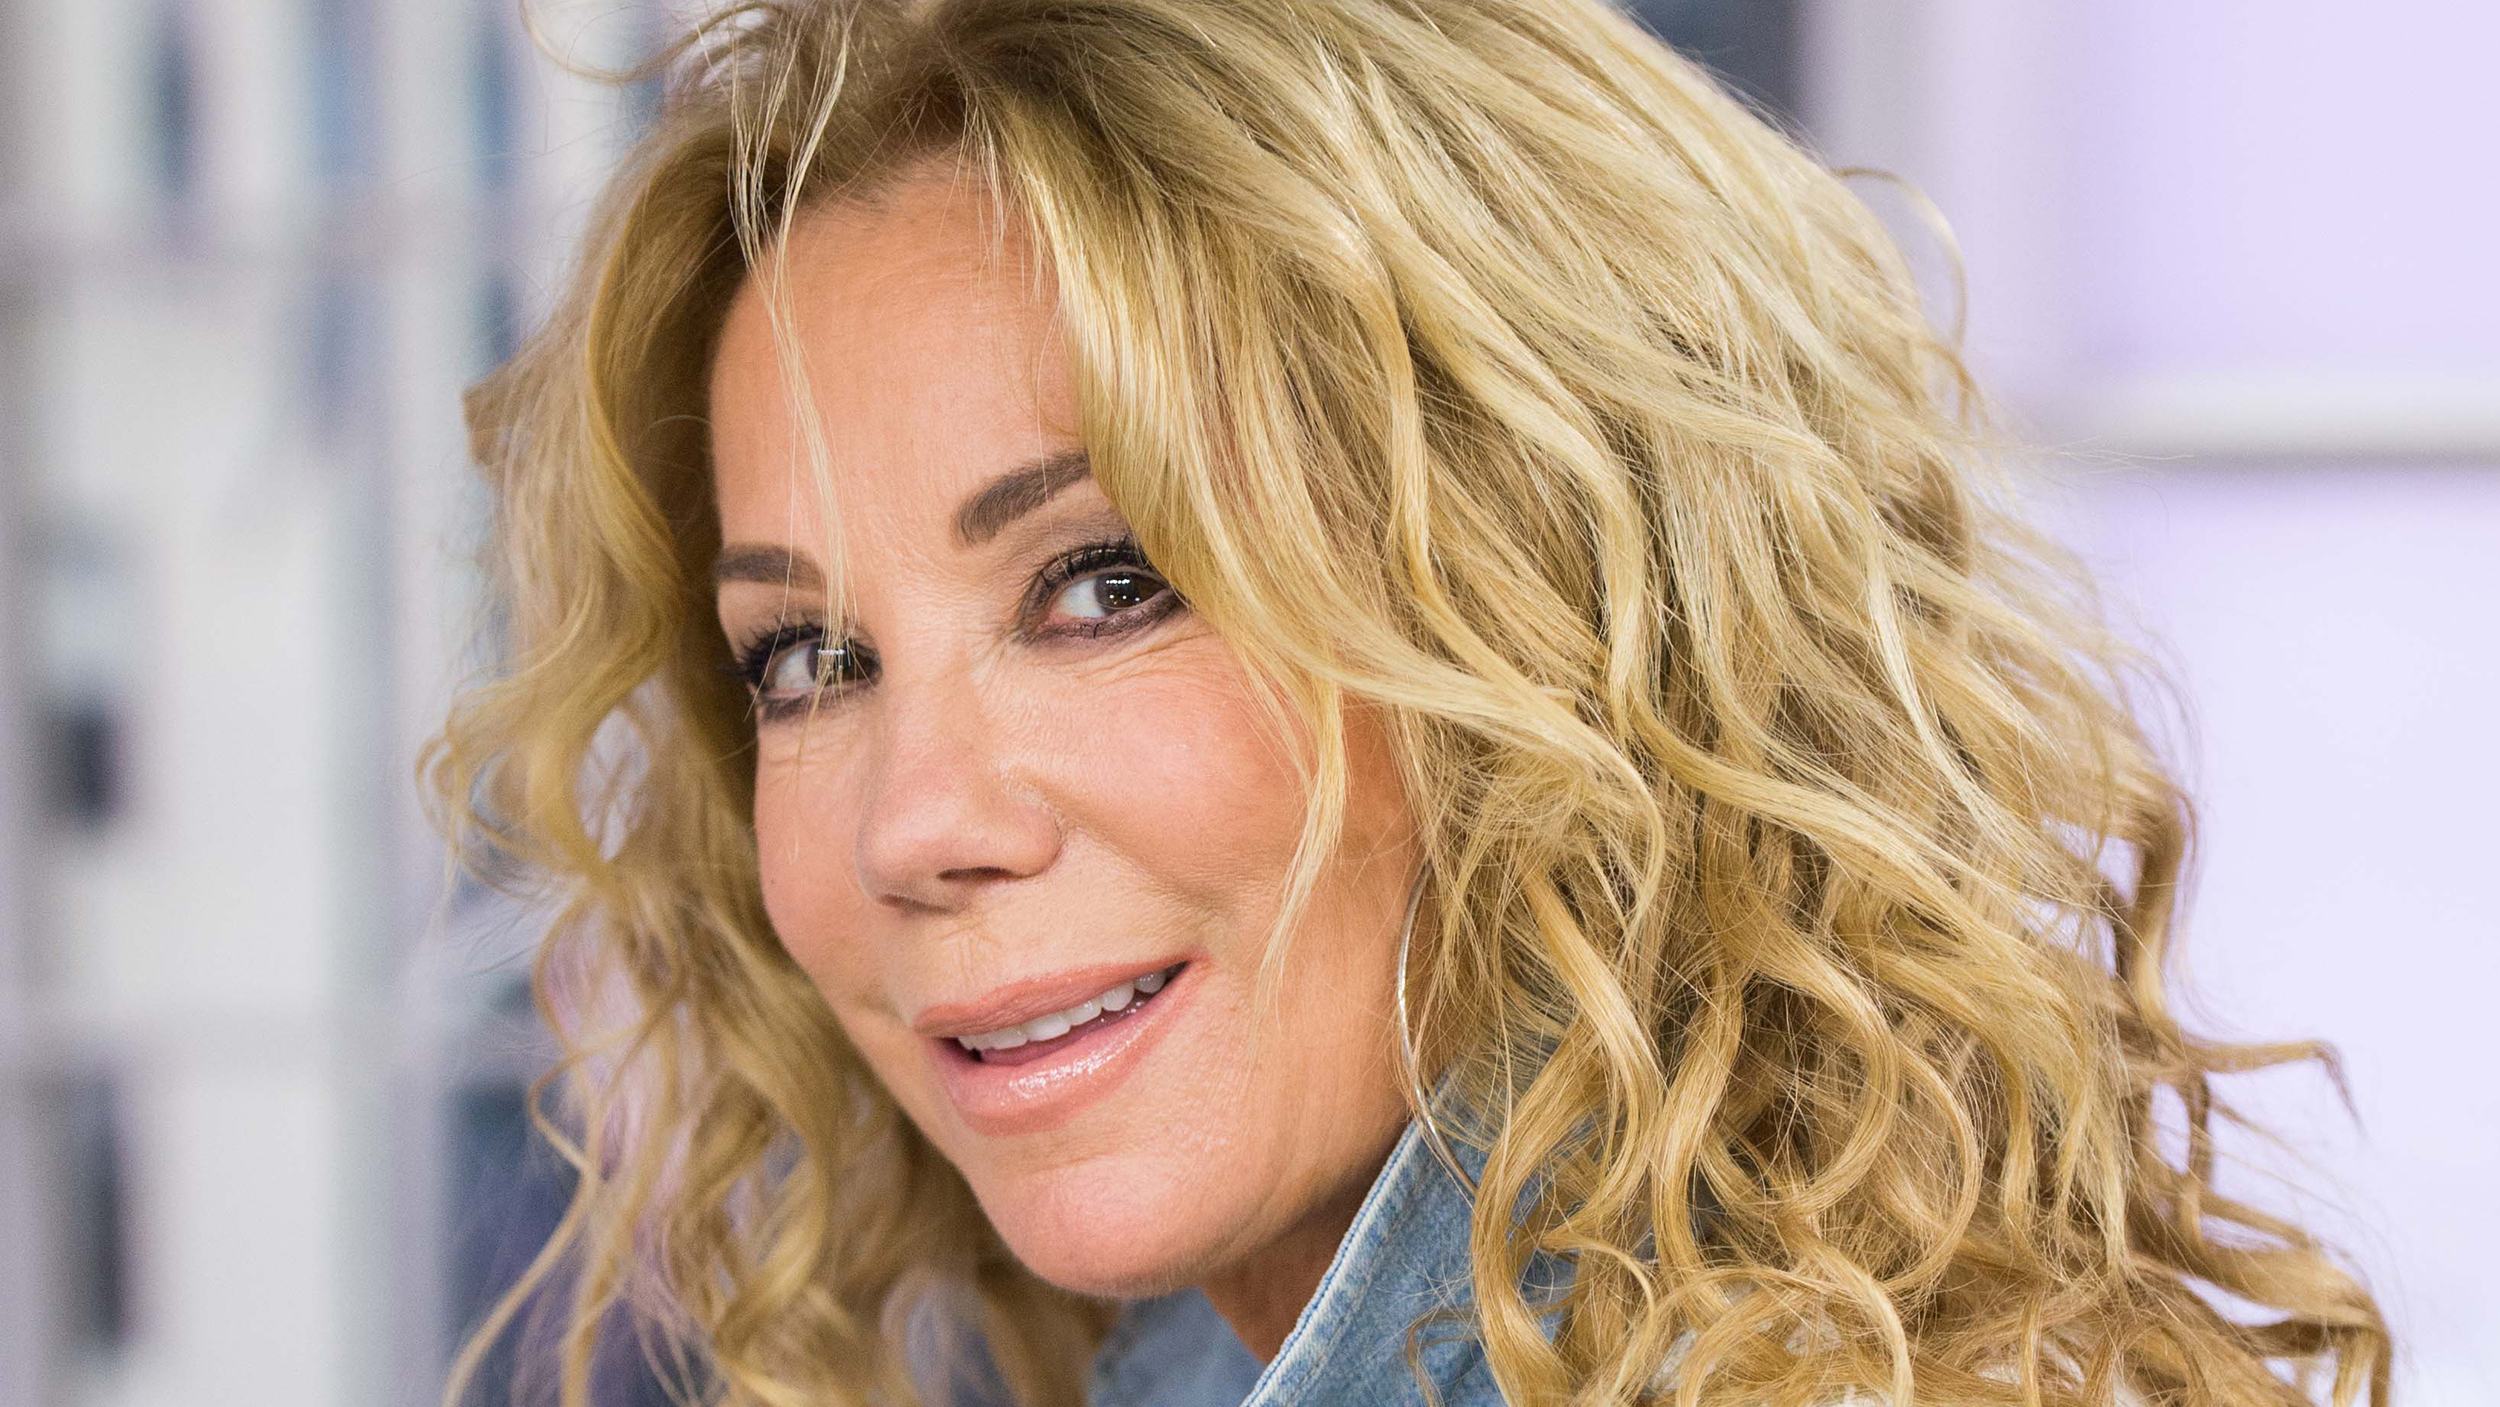 Todays Hair Styles : How to get Kathie Lee Giffords curly hairstyle on TODAY - TODAY.com